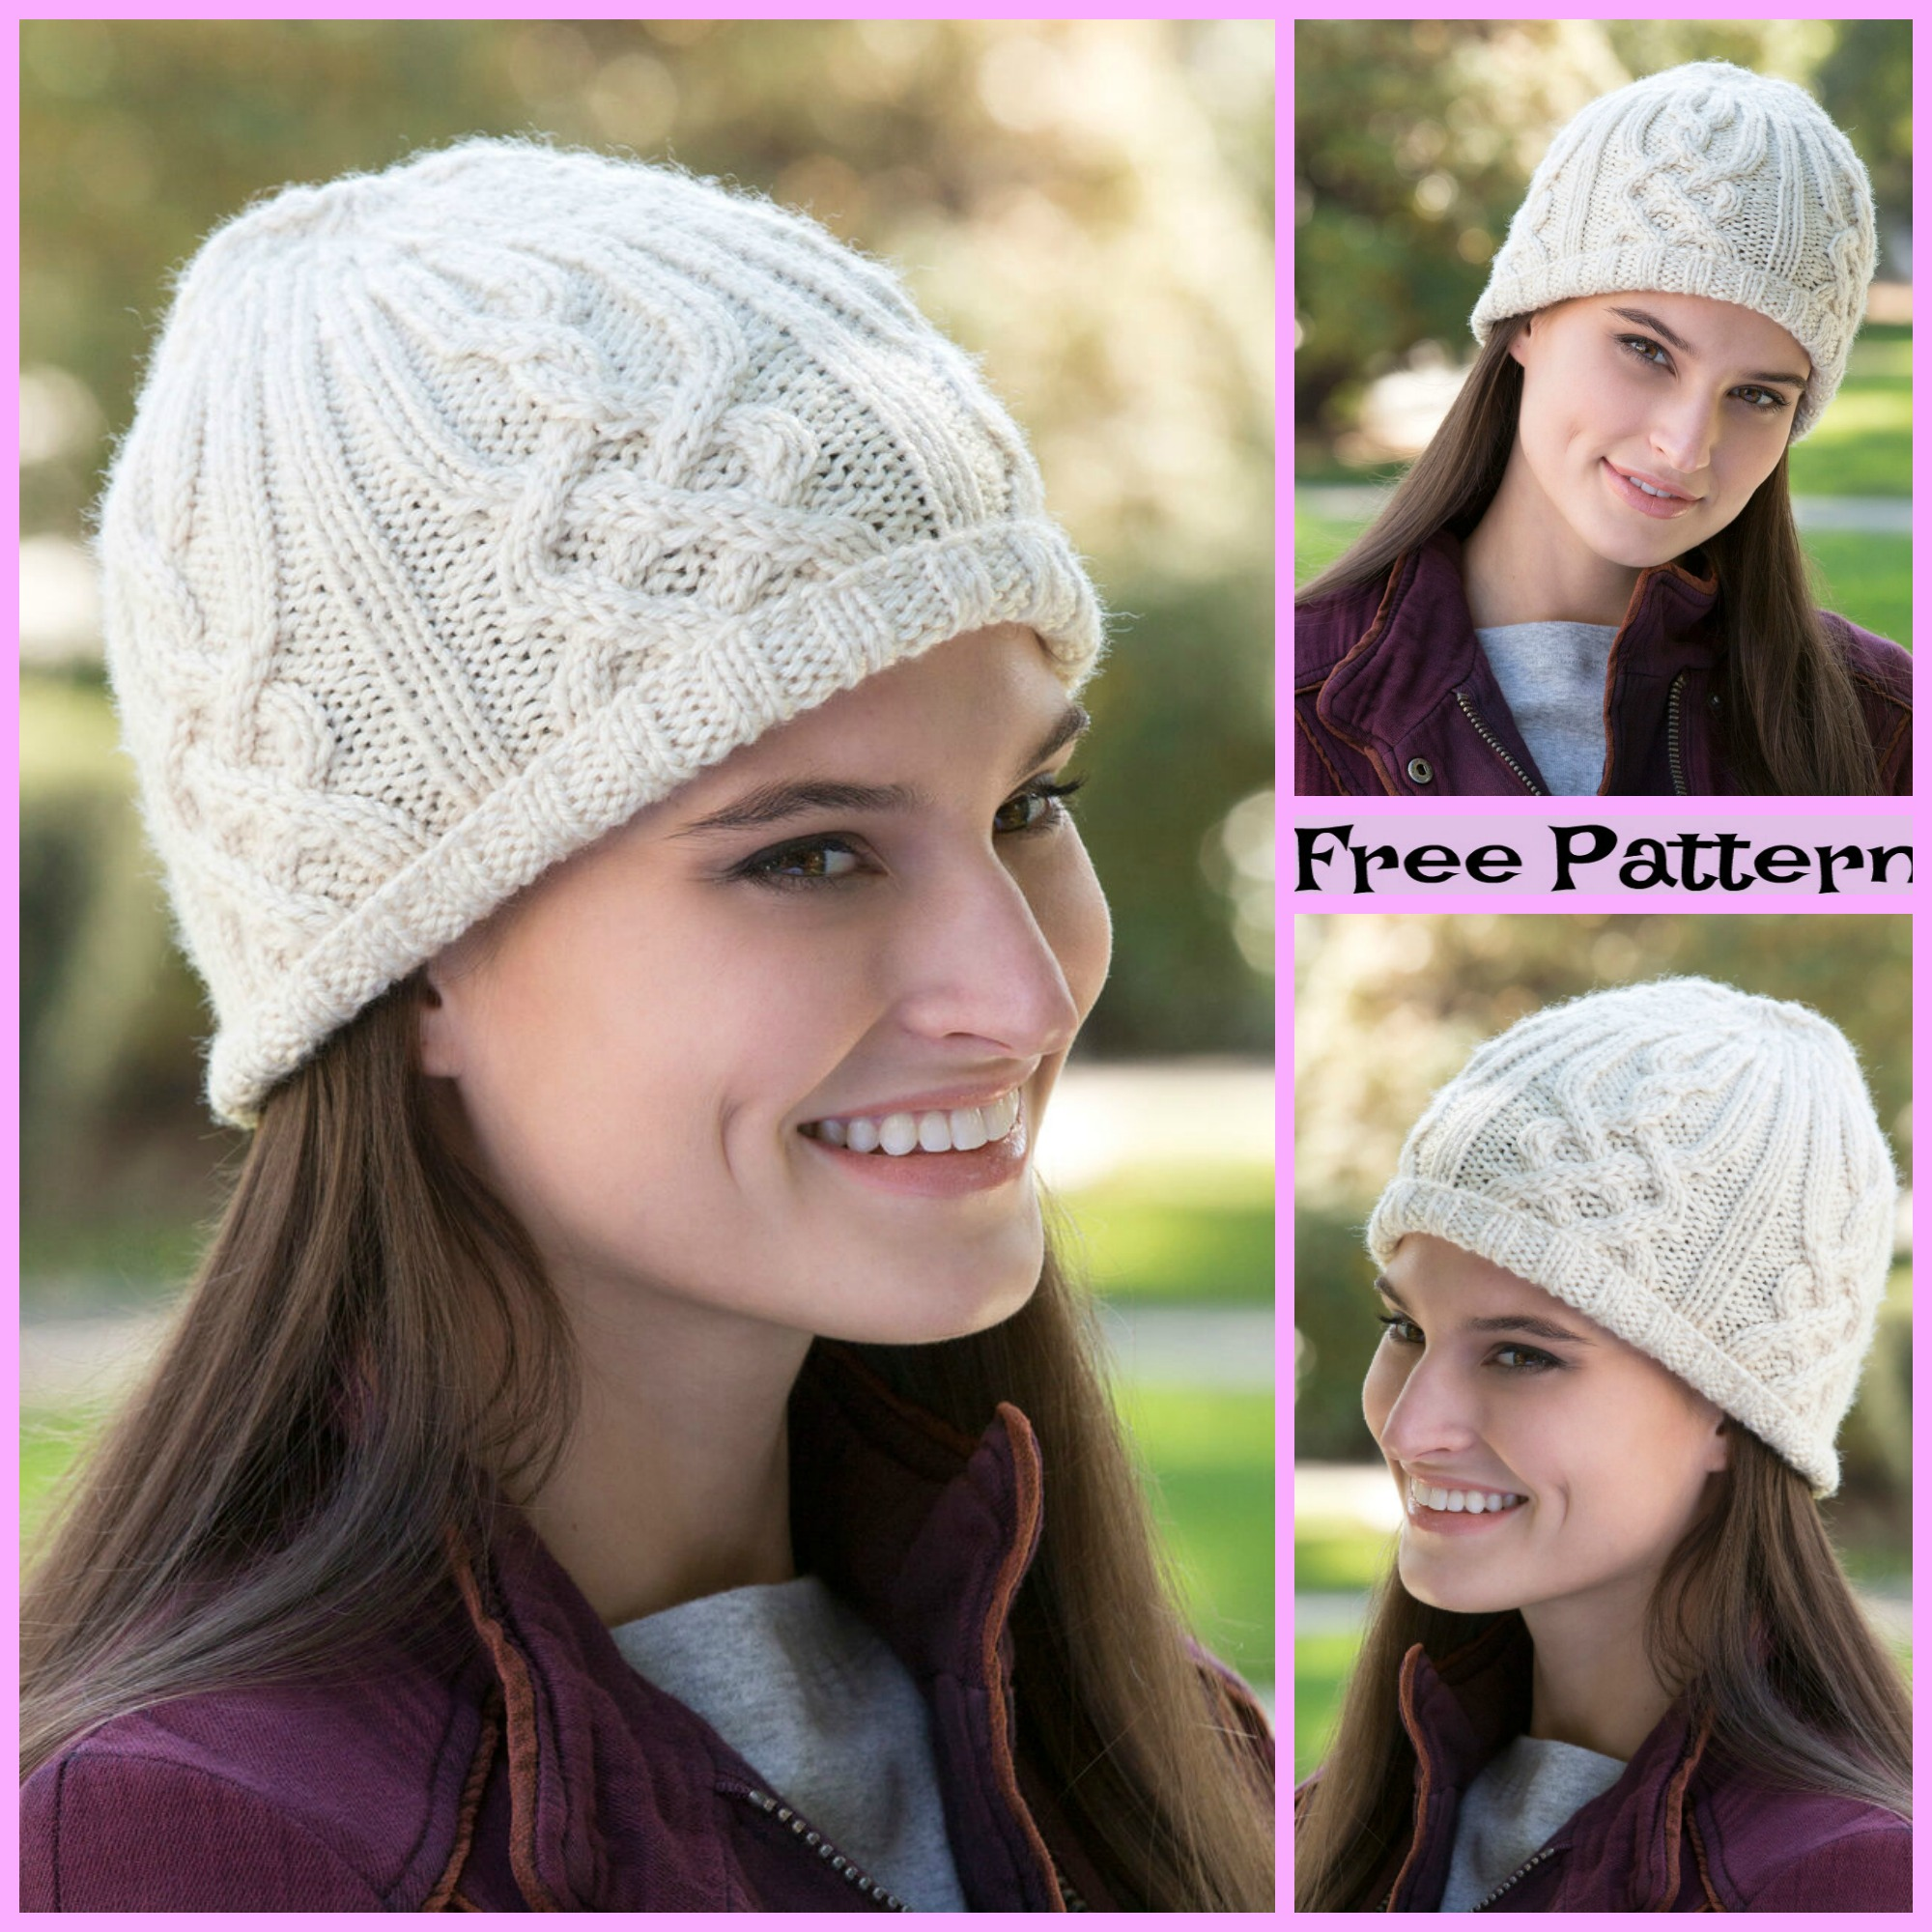 diy4ever-Knit Cozy Cable Hats - Free Patterns